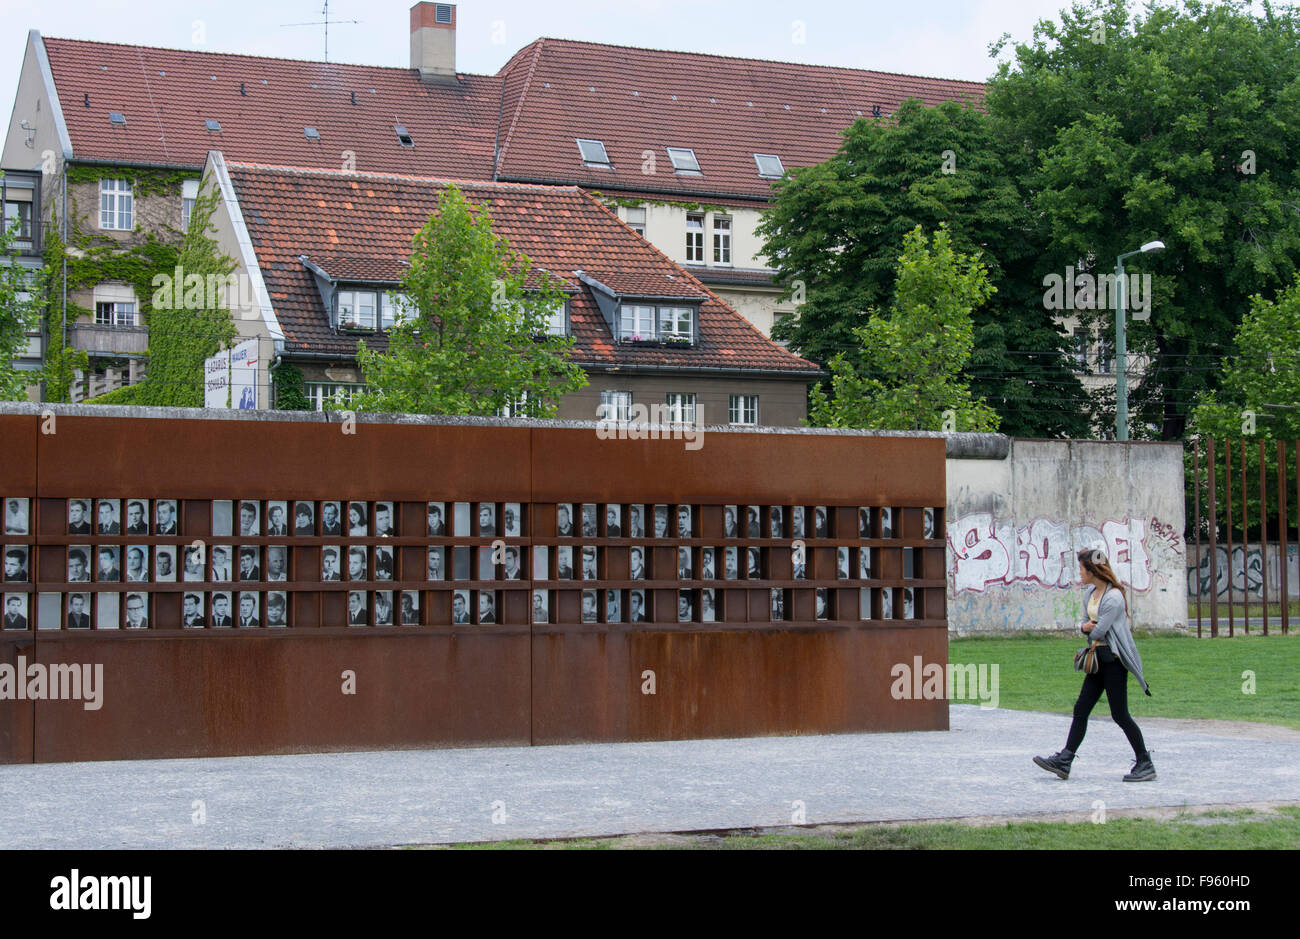 The Berlin Wall Memorial, with images of killed people, on Bernauer Strasse, Berlin, Germany - Stock Image